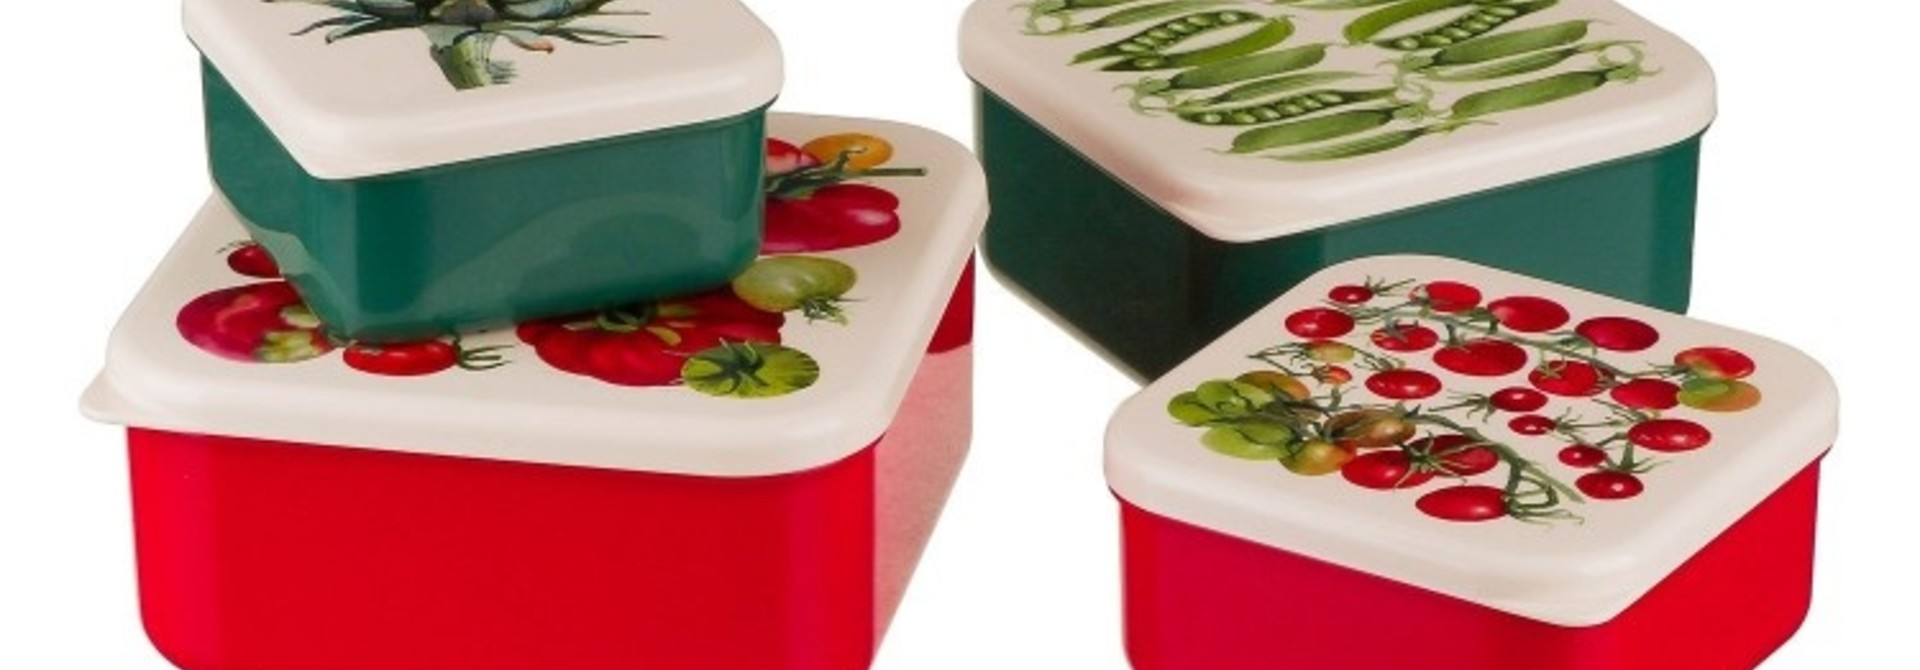 Vegetable Garden - Snack Set (4)